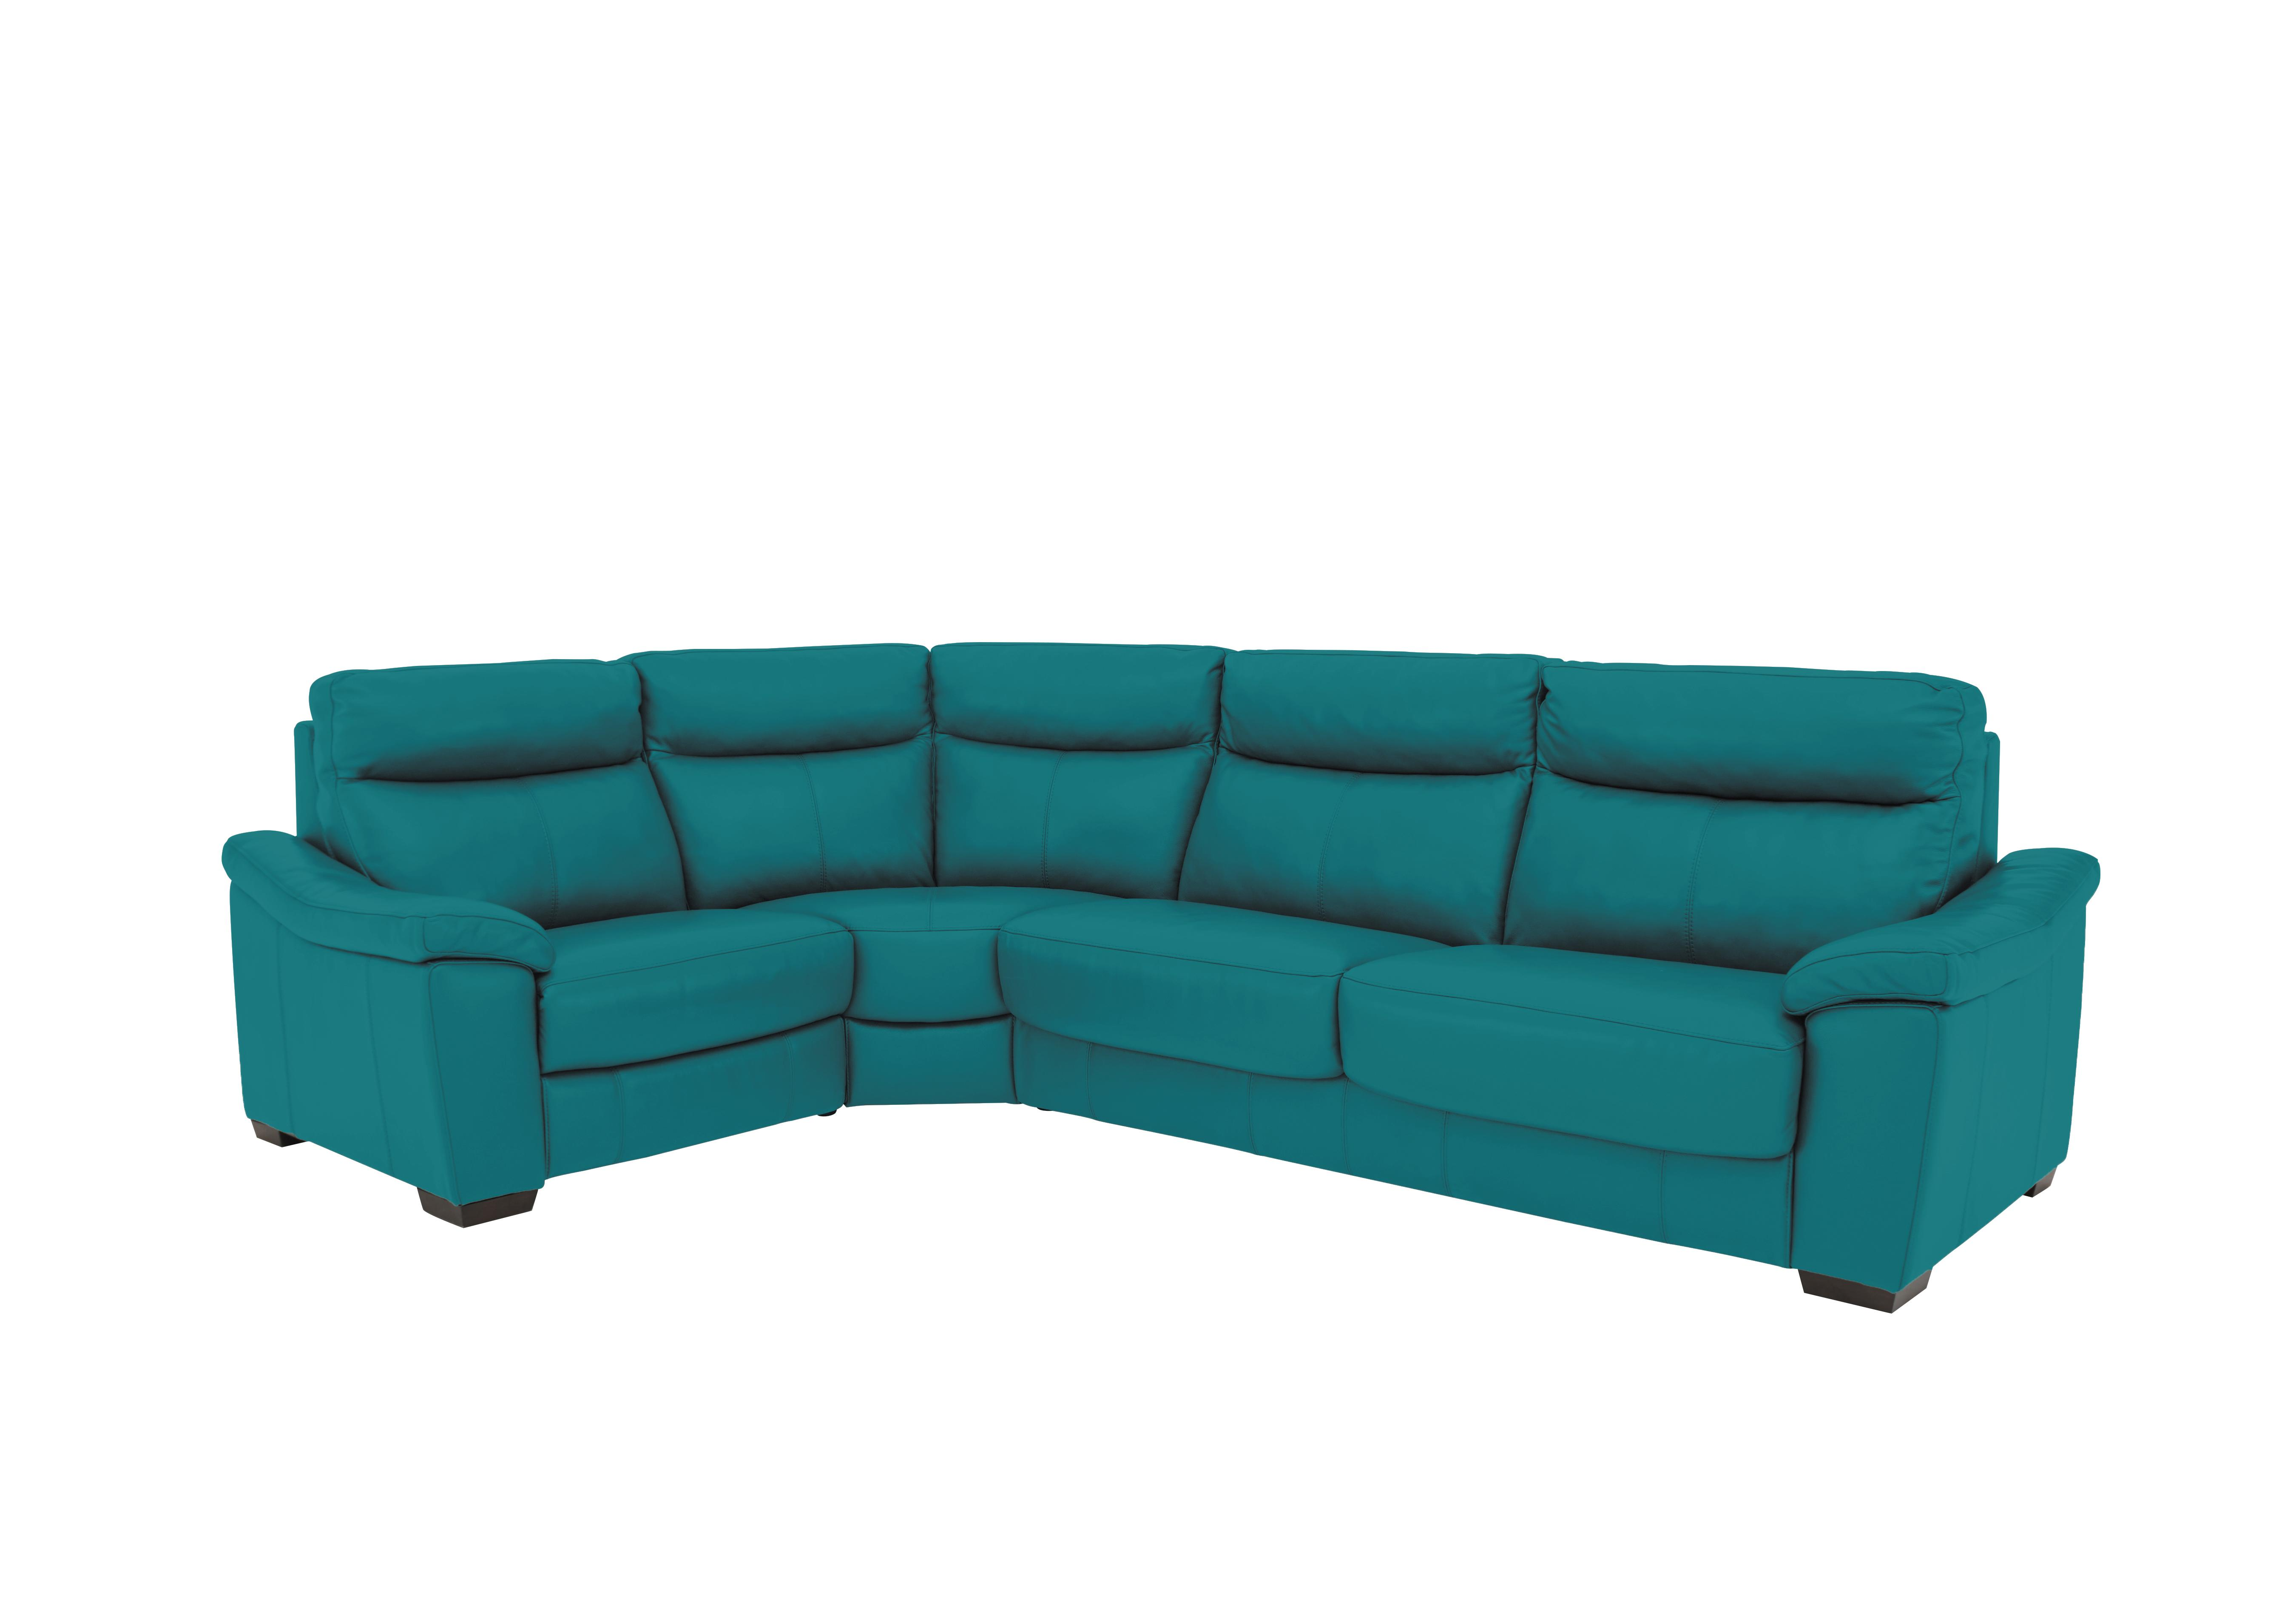 teal sofas wooden sofa sets in dubai beds comfortable and gorgeous furniture village save 870